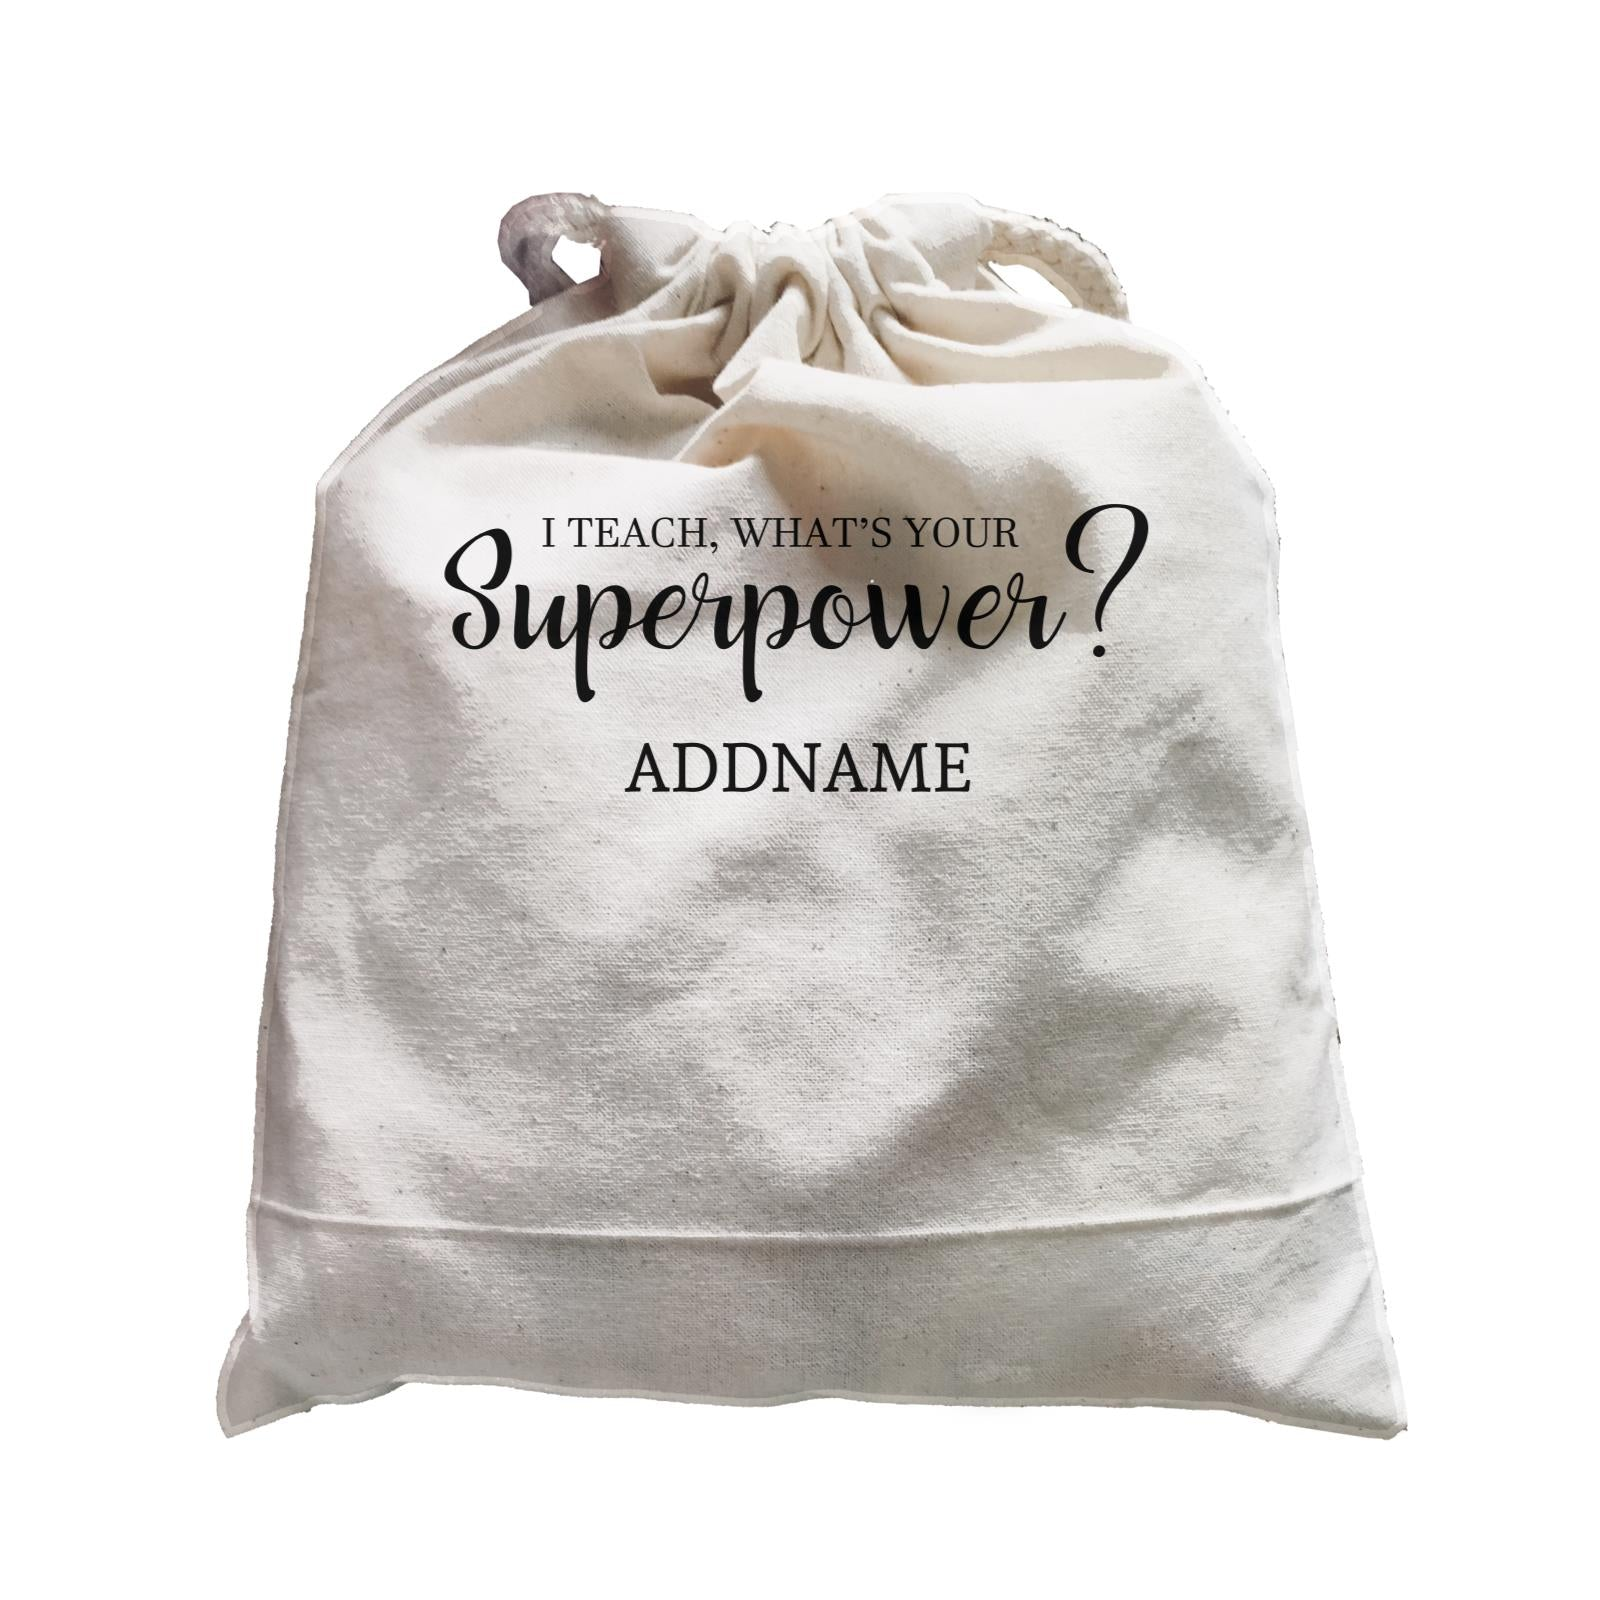 Super Teachers I Teach What's Your Superpower Addname Satchel